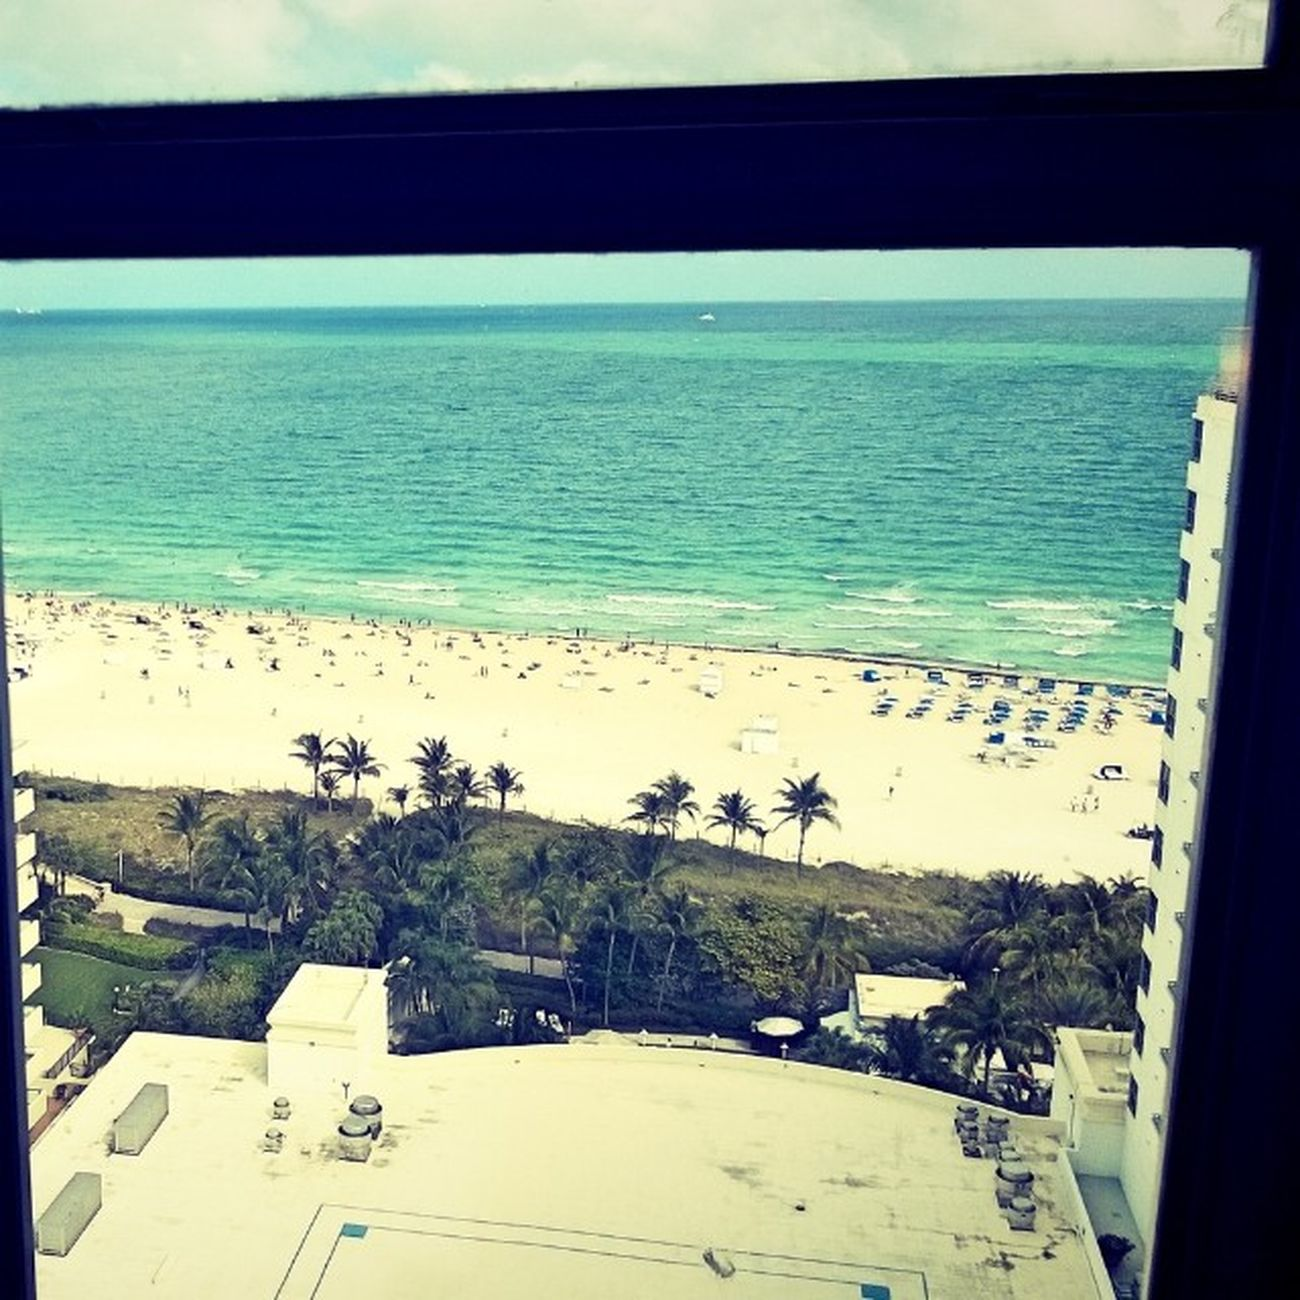 I can't wait to get out of this hotel and go to the beach! Miami Mia Yrflifestyle Flordia Lowesmiamibeach Sobefest